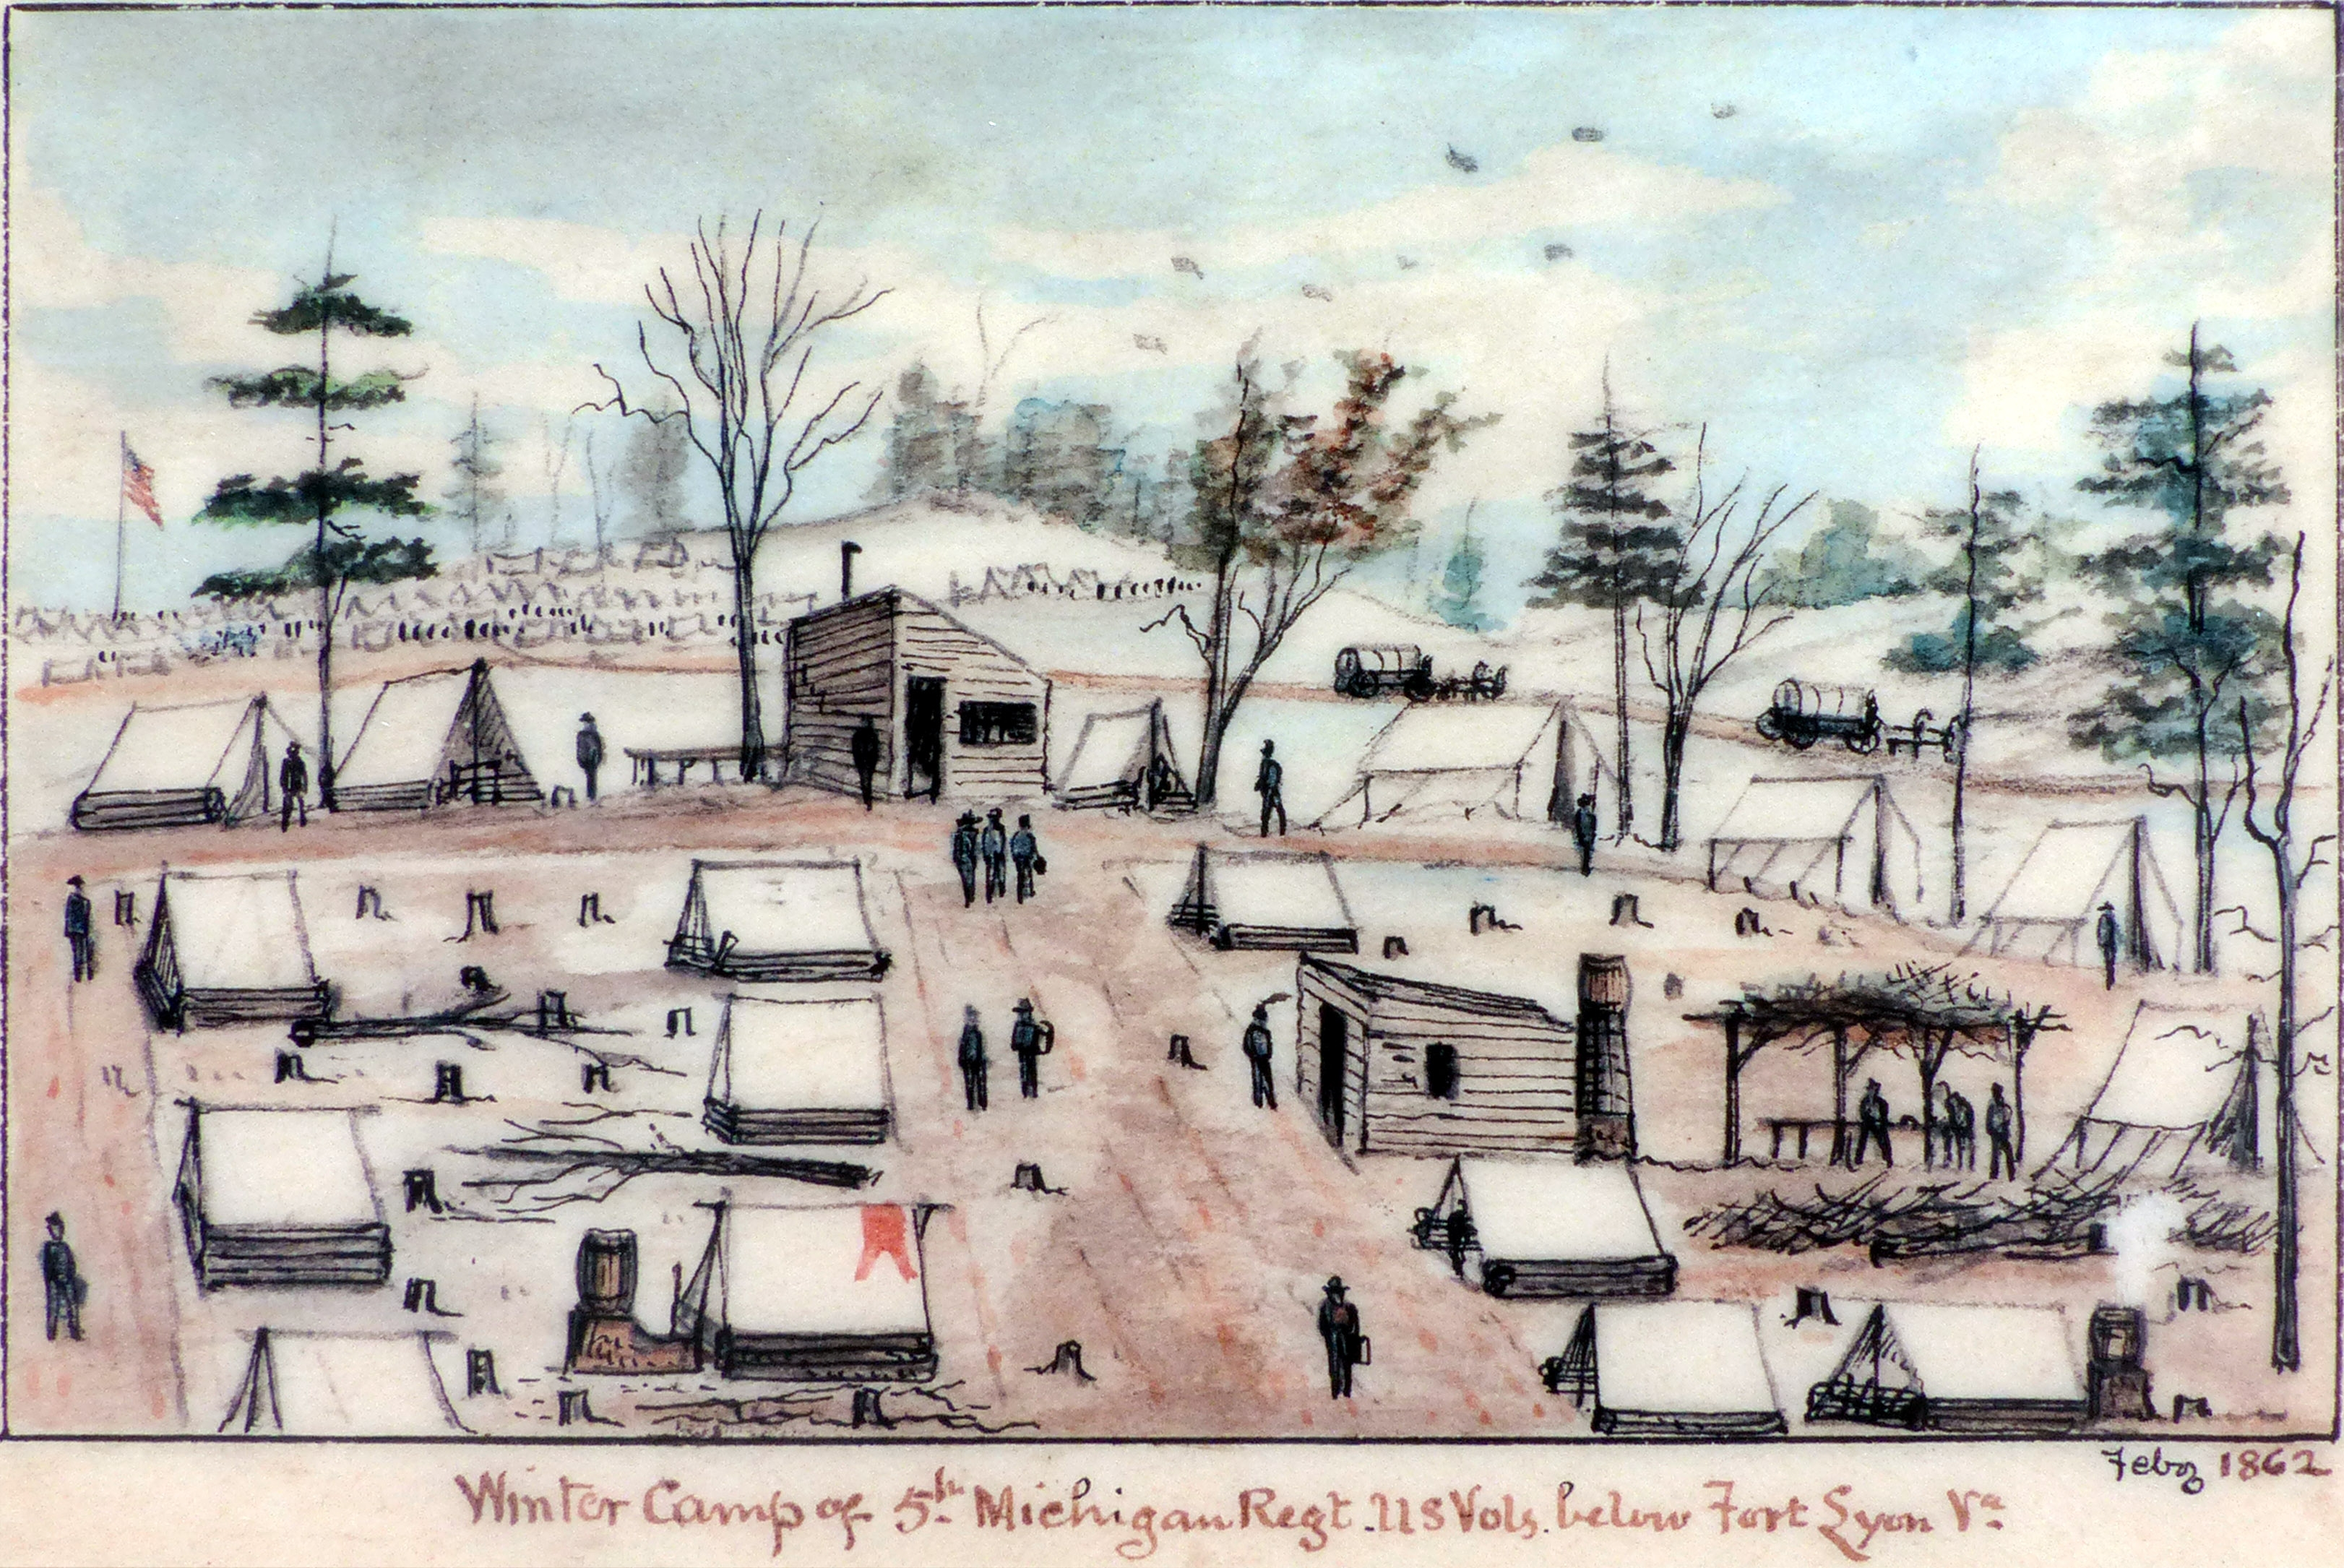 Winter Camp of the 5th Michigan Regiment U.S. Vols. Below Fort Lyon Va., February 1862